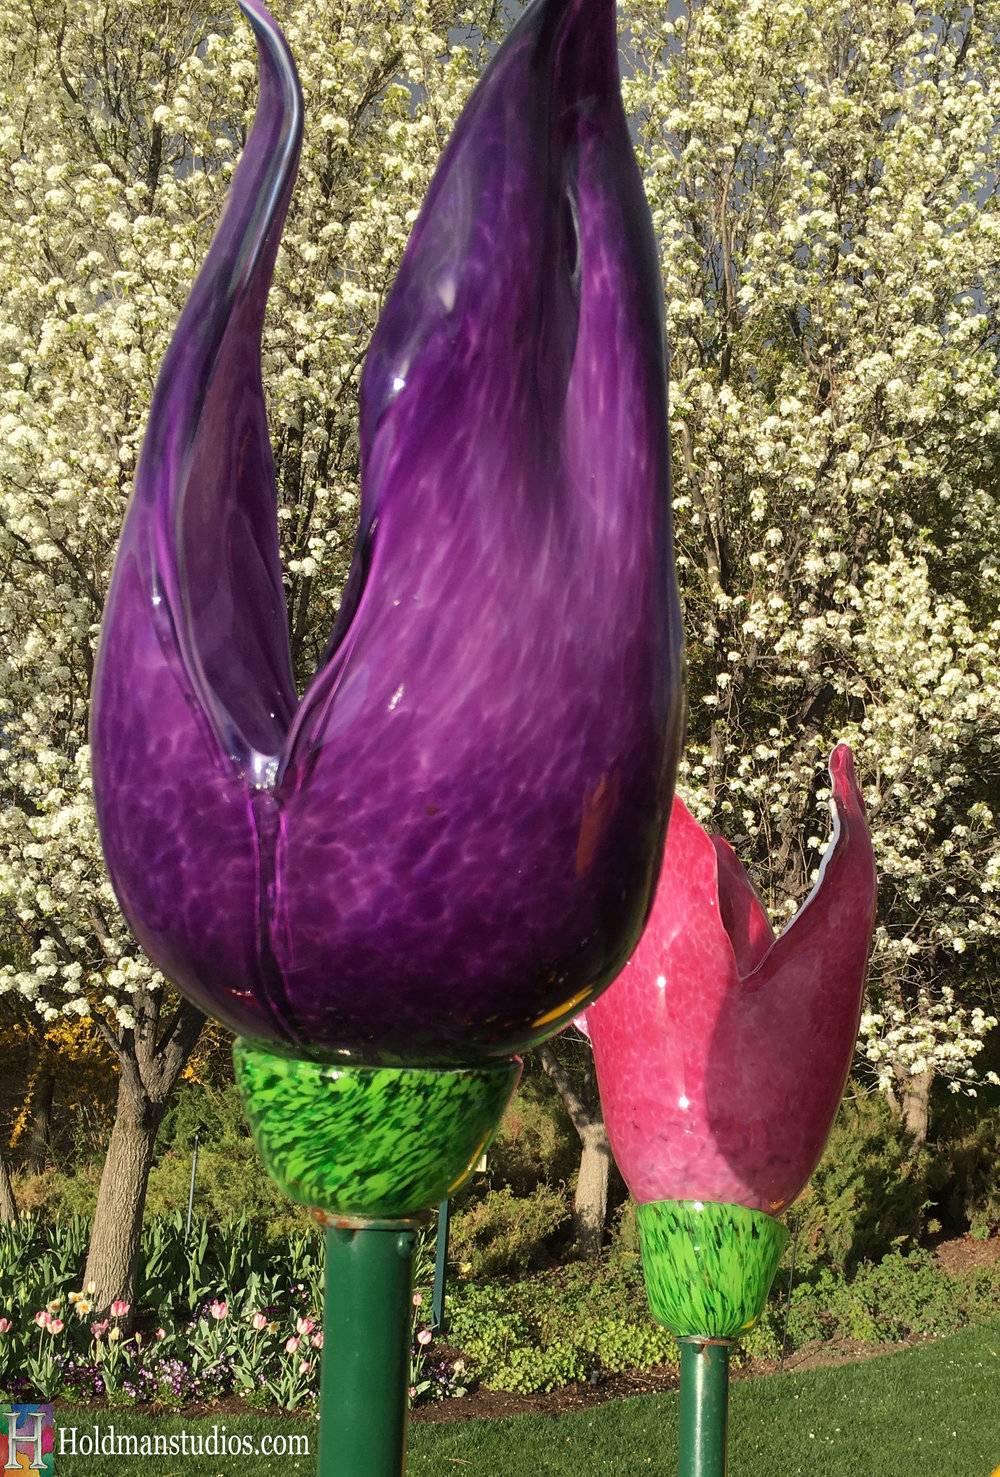 Blown Glass_Ashton Garden Tulips 7.jpg